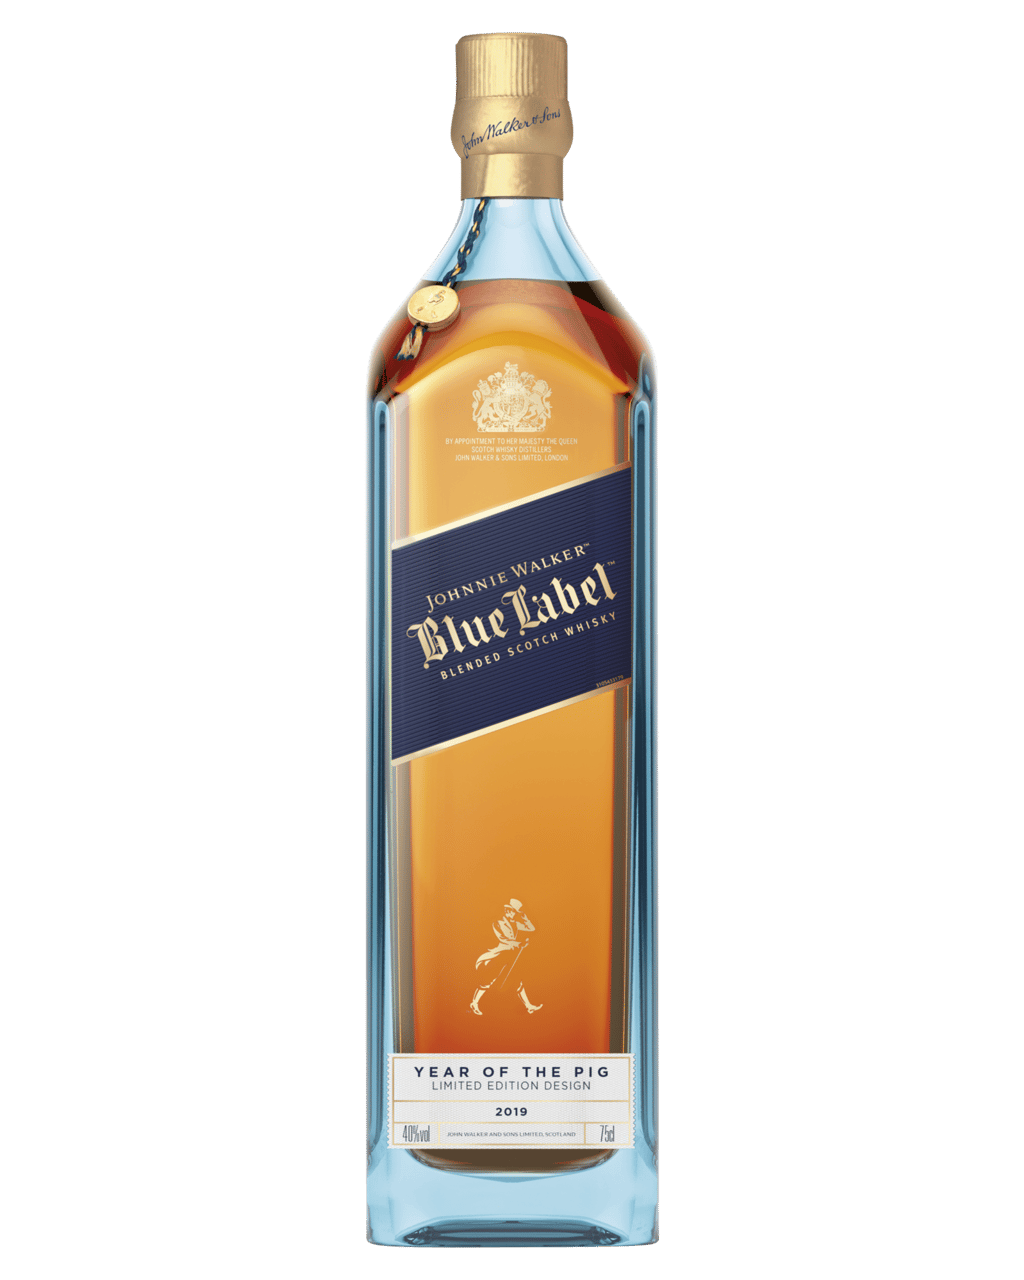 6c4d3967d2 Buy Johnnie Walker Blue Label Zodiac Year of the Pig Scotch Whisky ...